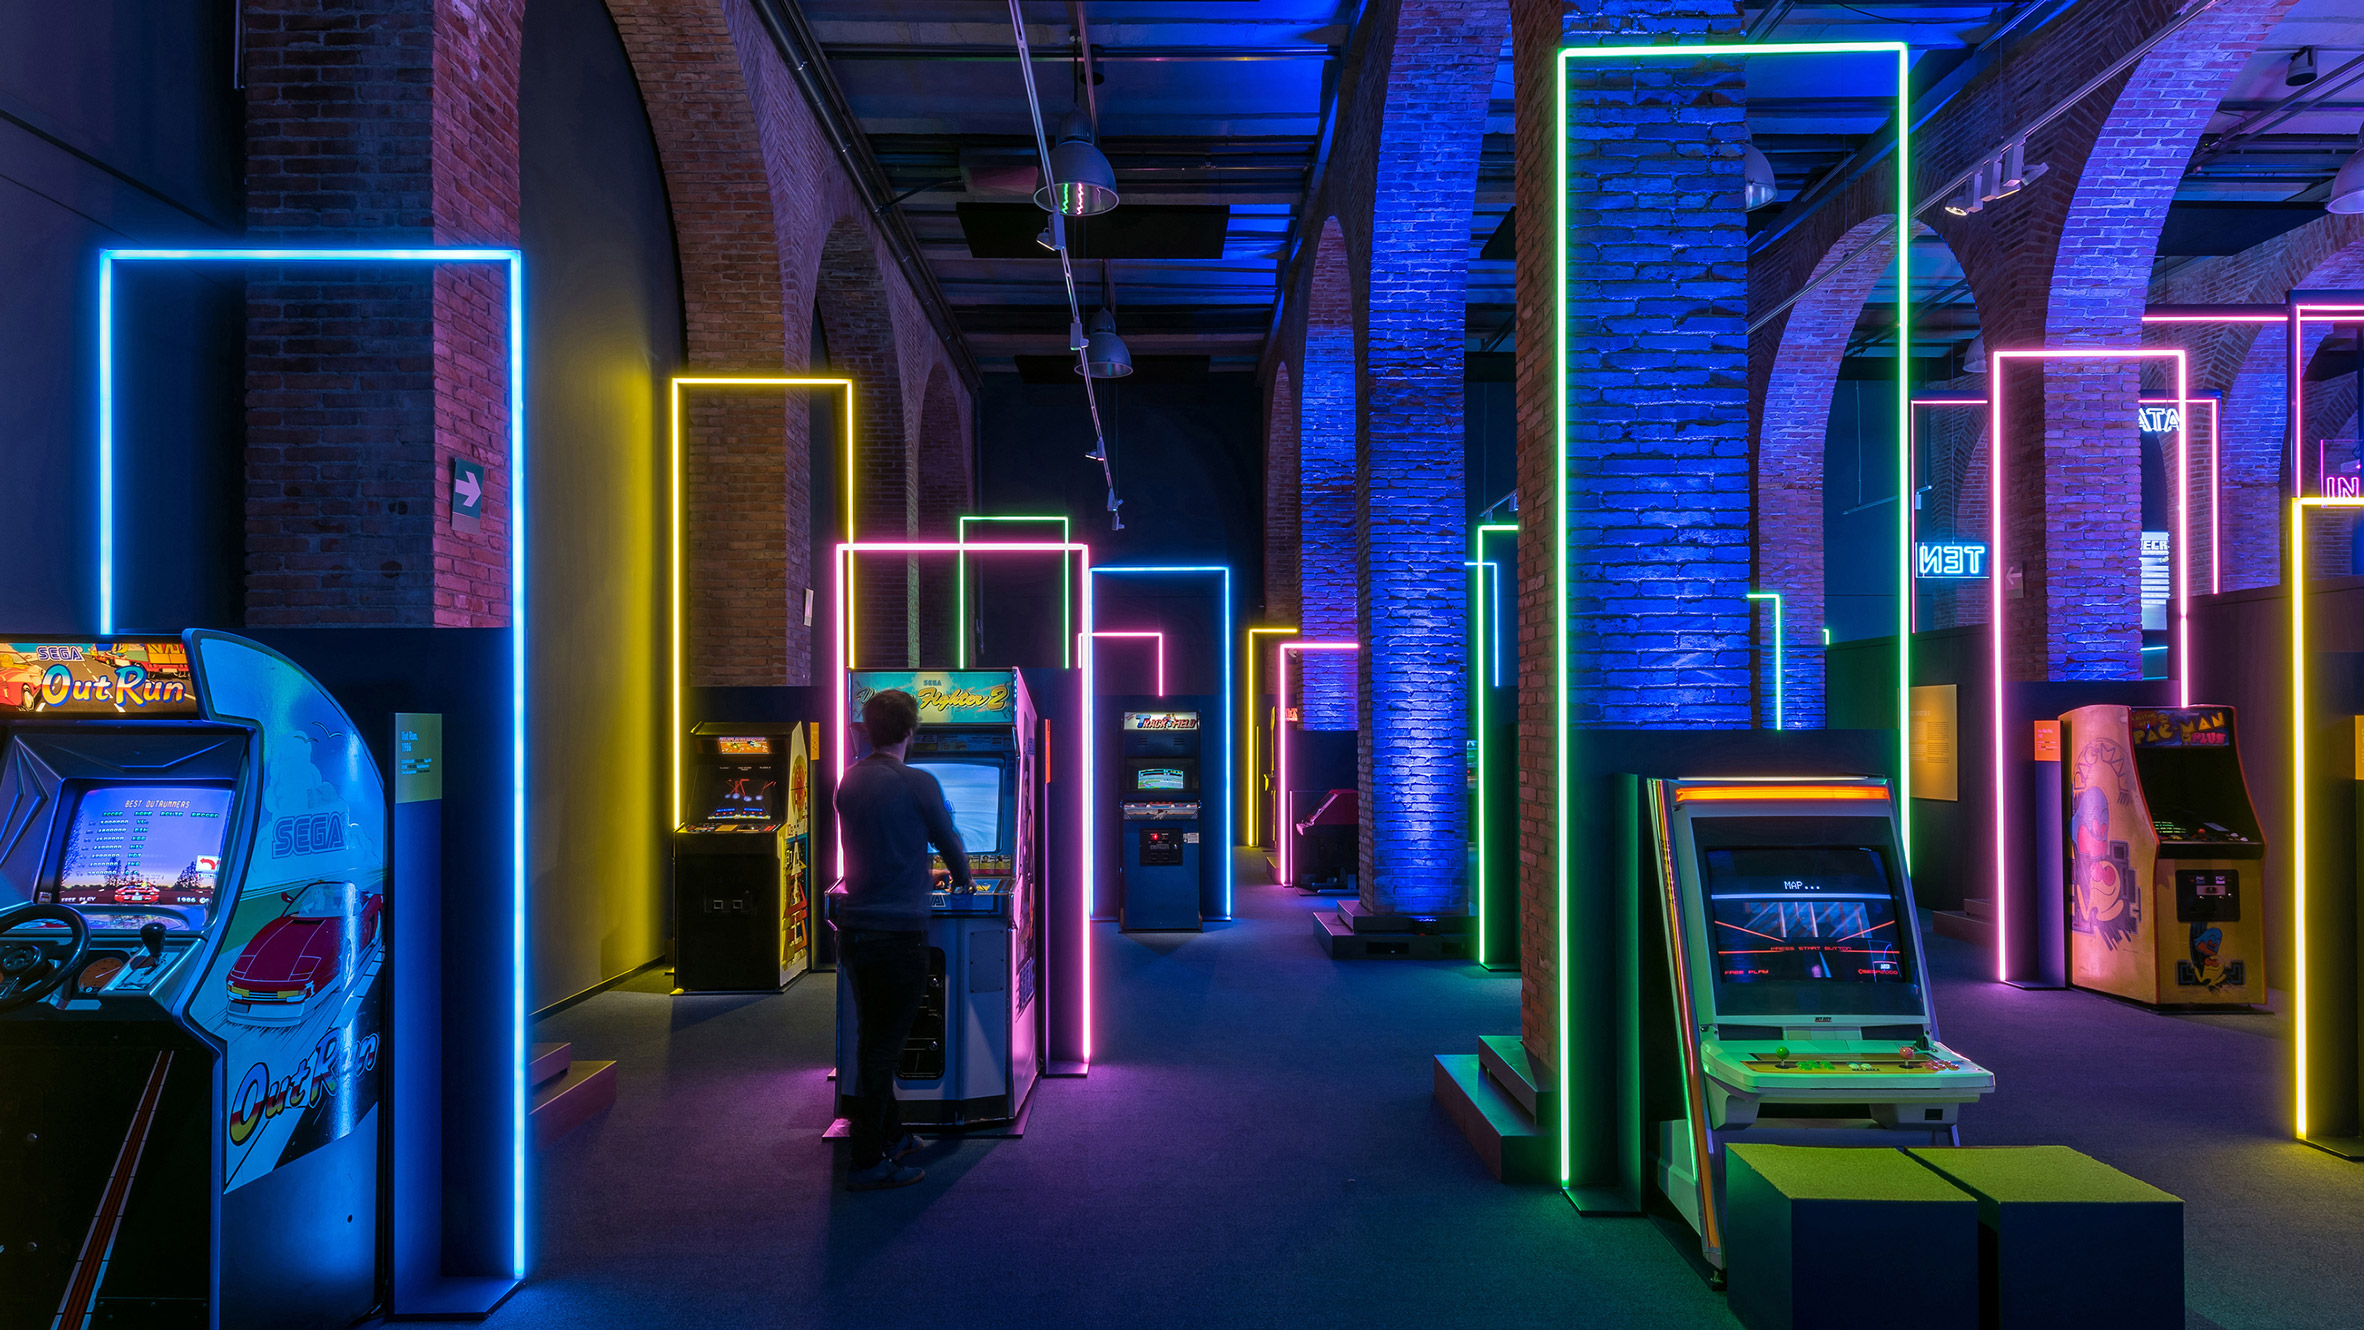 Game On's neon-filled exhibition design pays homage to 80s video games